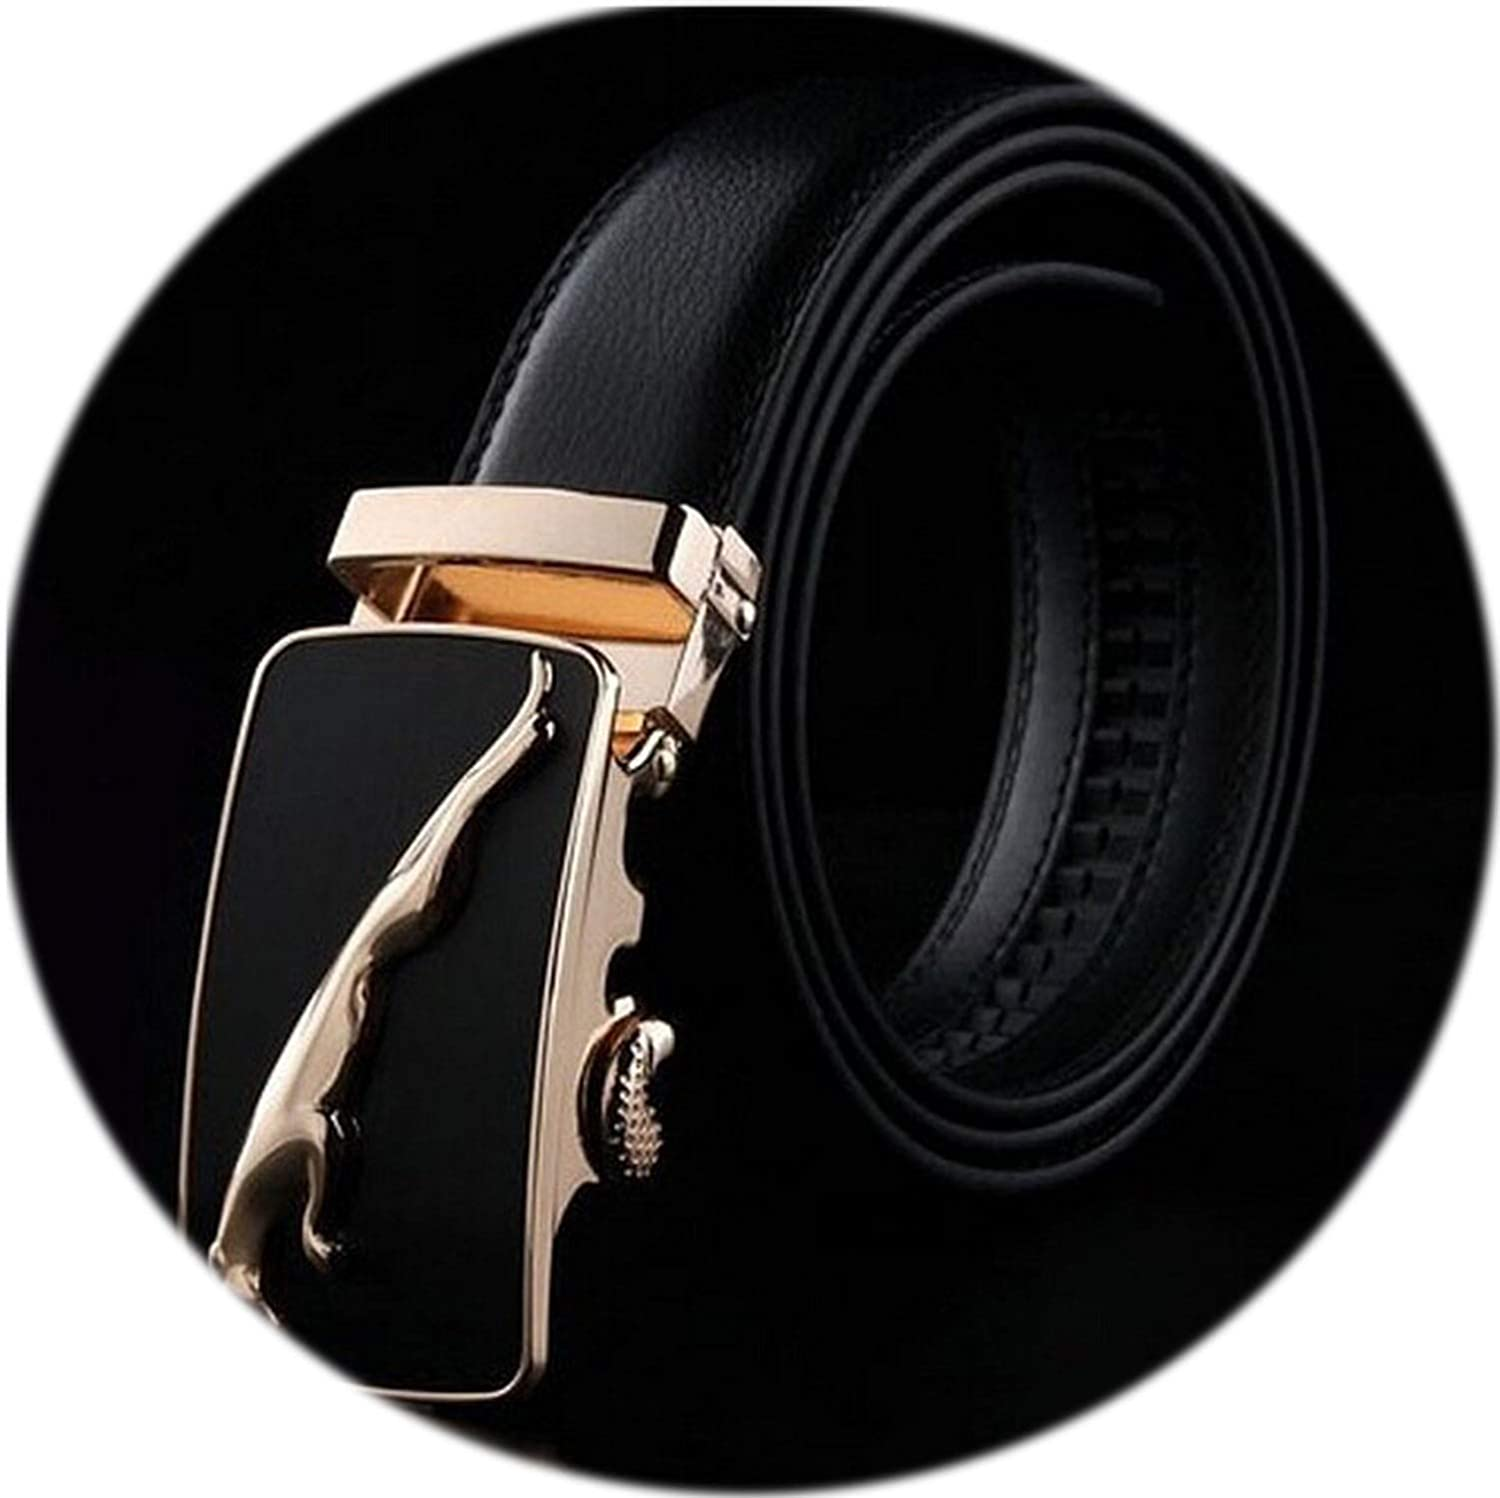 Mens Business Fashion Formal Casual Style Belt Designer Leather Strap Male Man Belt Automatic Buckle Belts For Men Top Quality,25,115cm